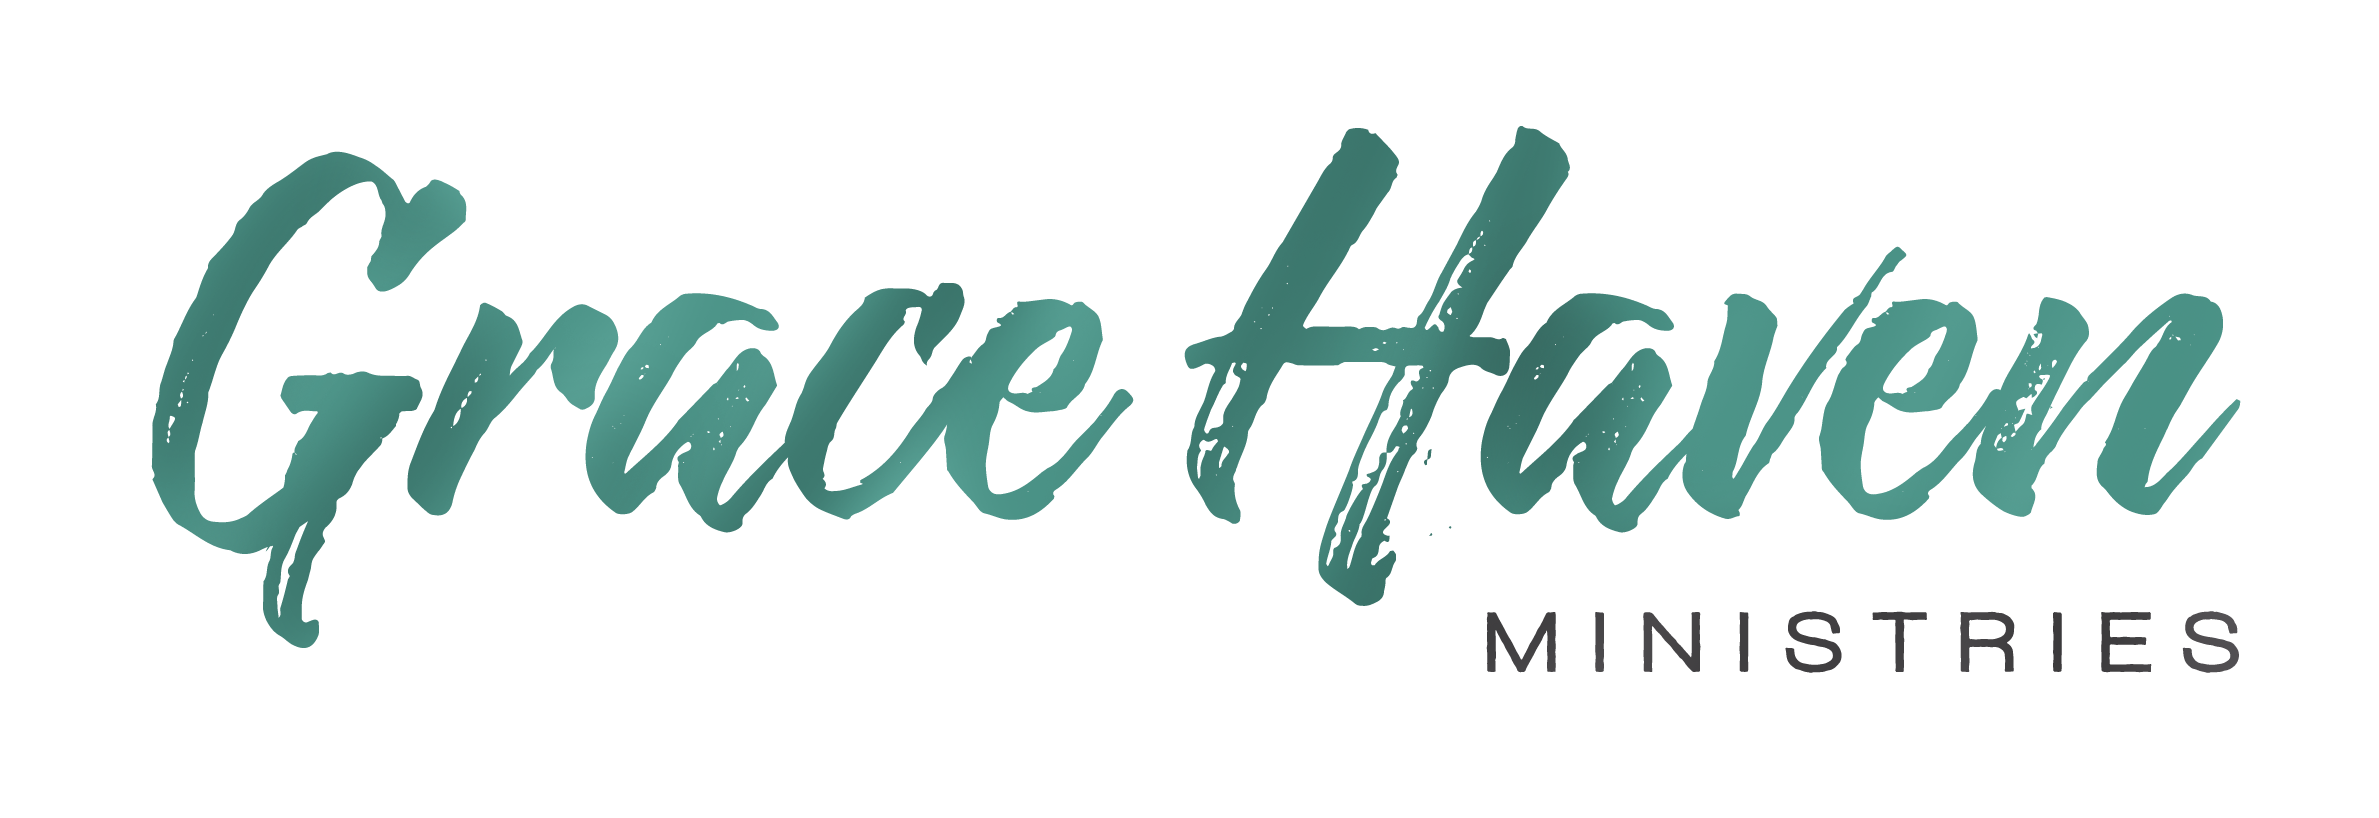 grace haven logo.png